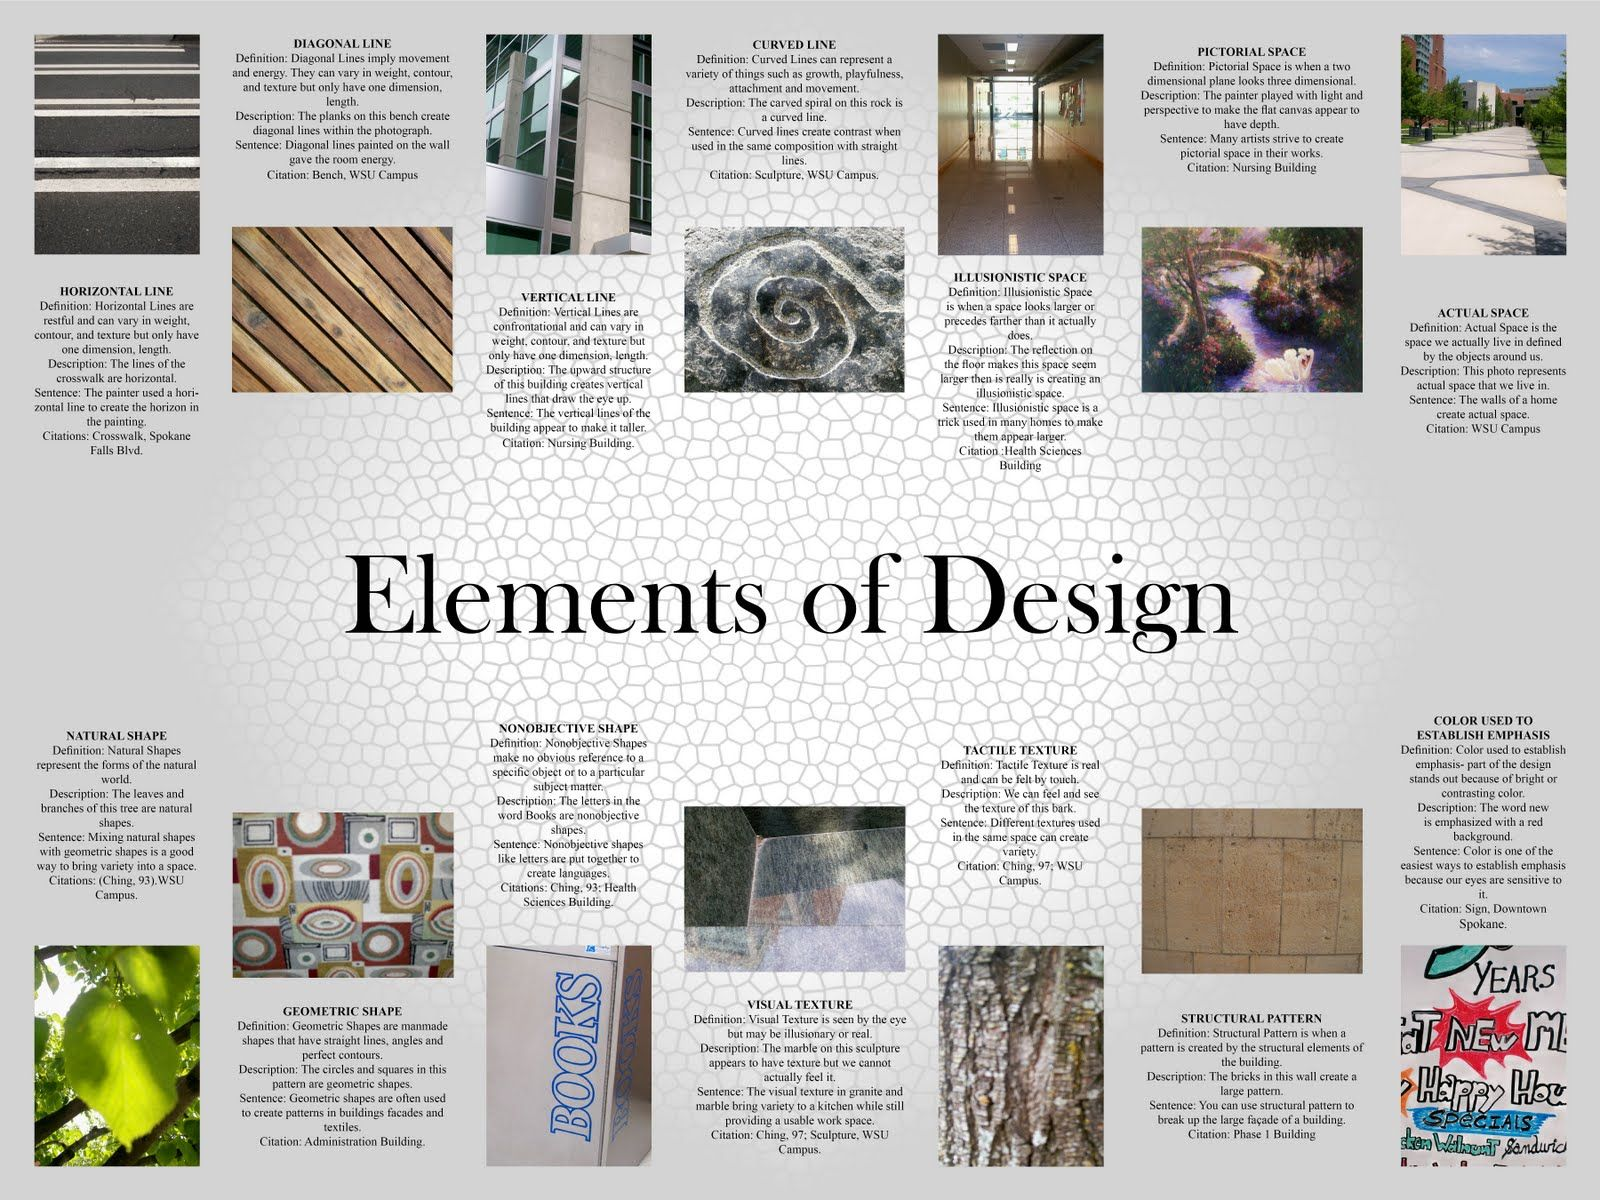 Interior Design Elements Elements And Principles Of Design In Fashion Photography  Google .